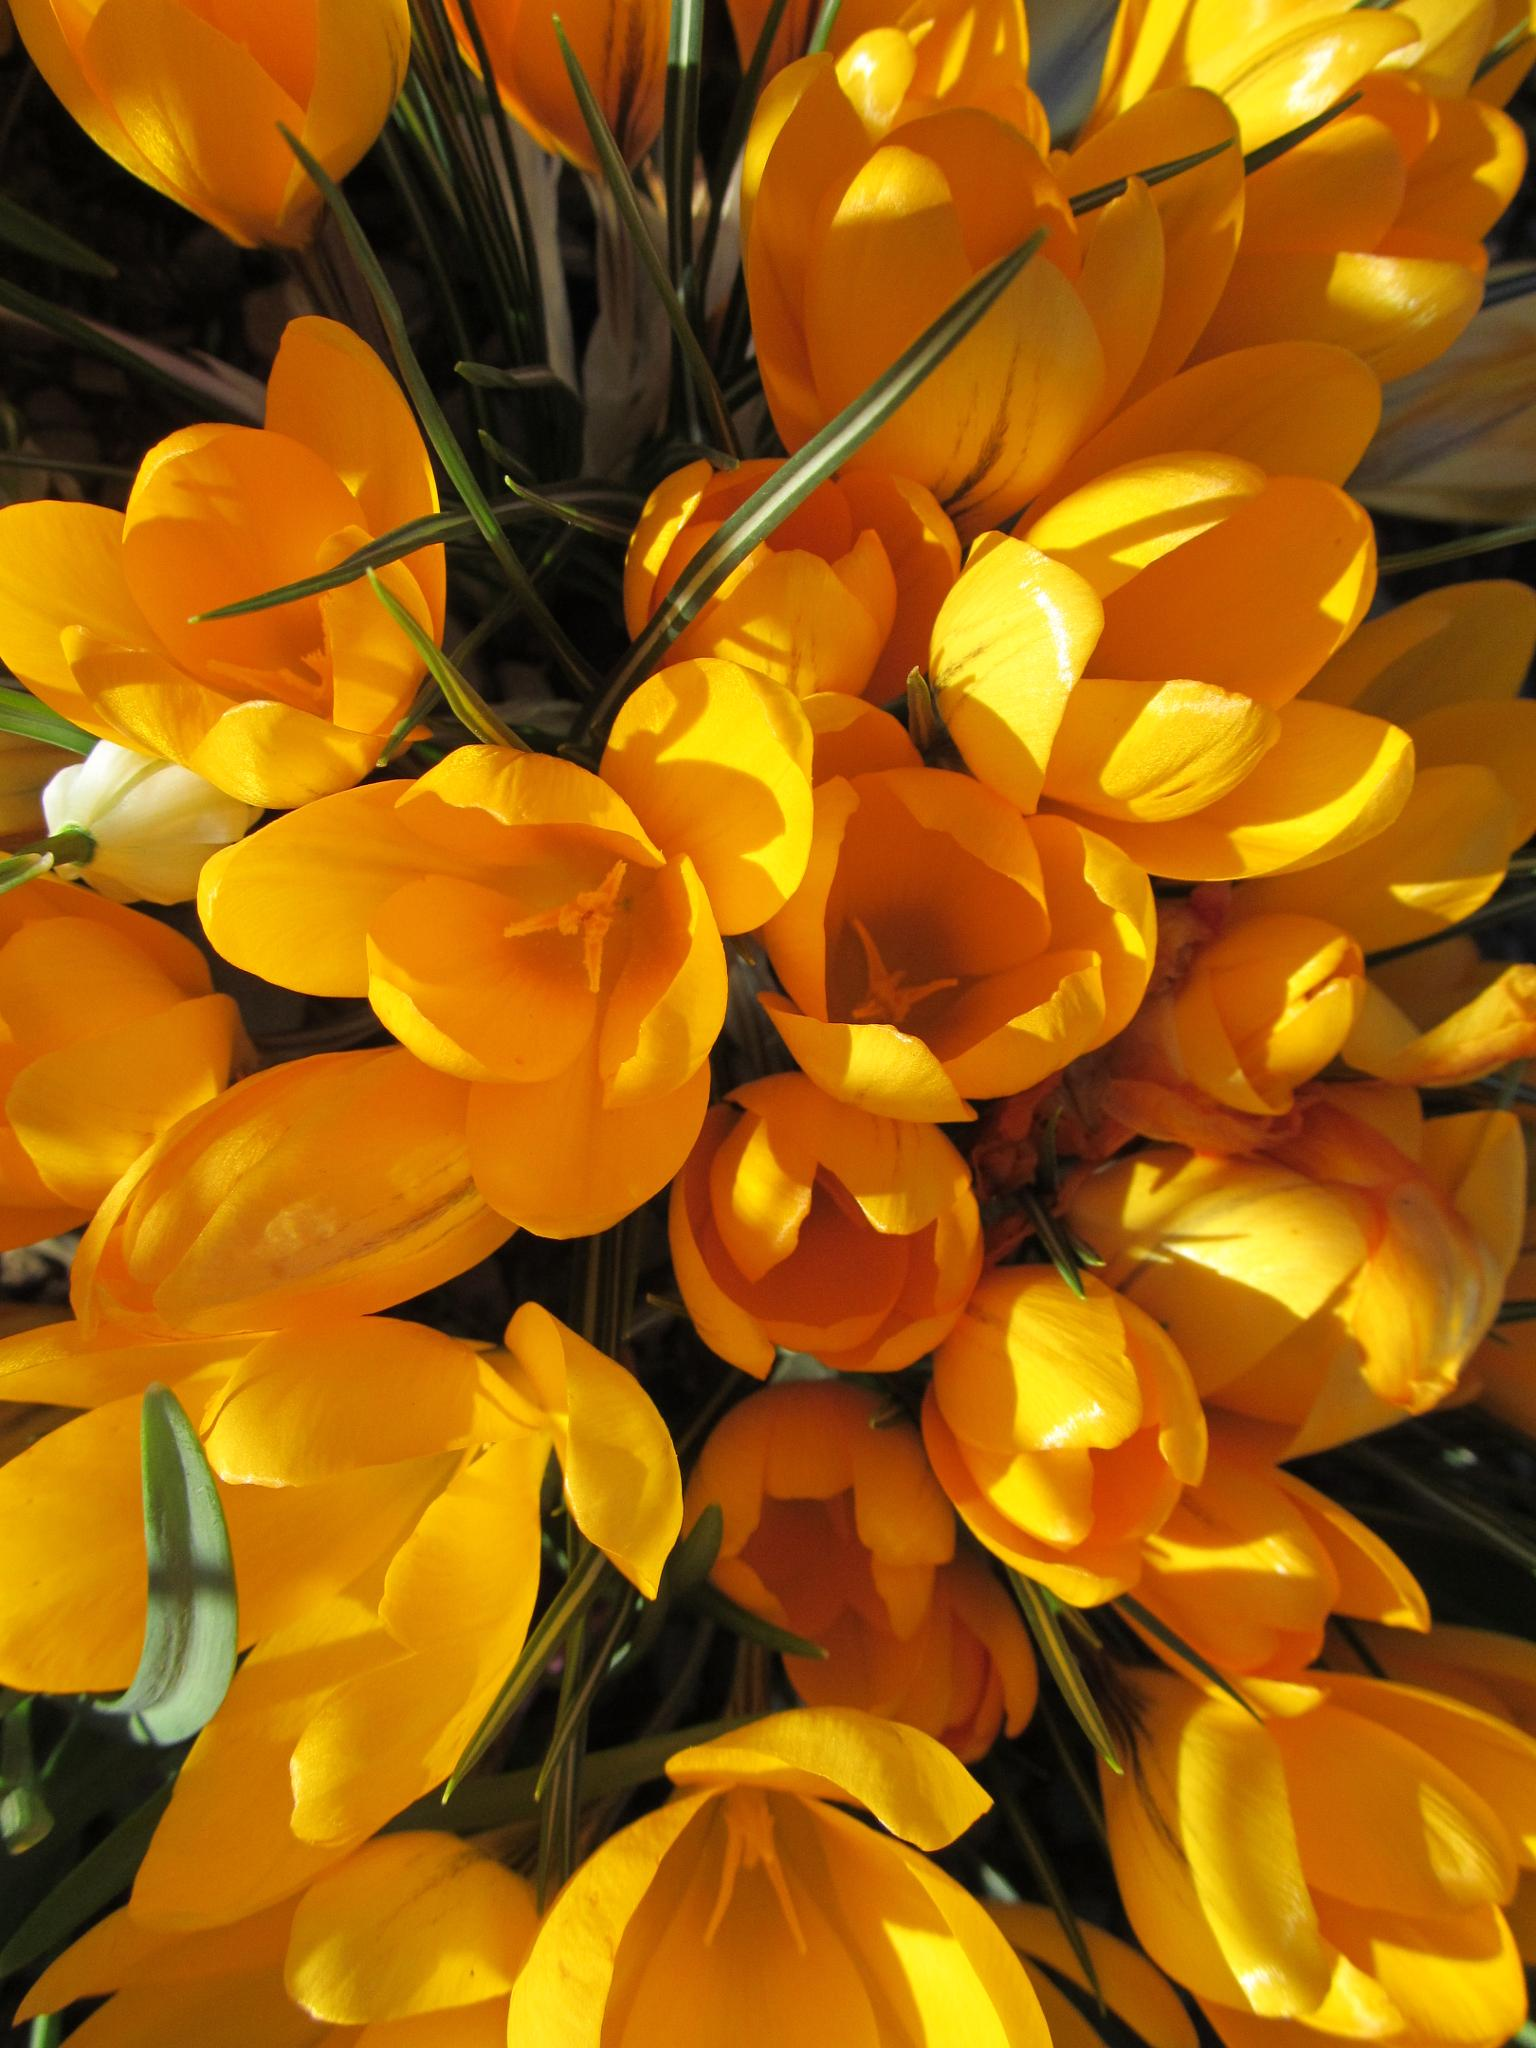 Golden Crocus by RonKelly